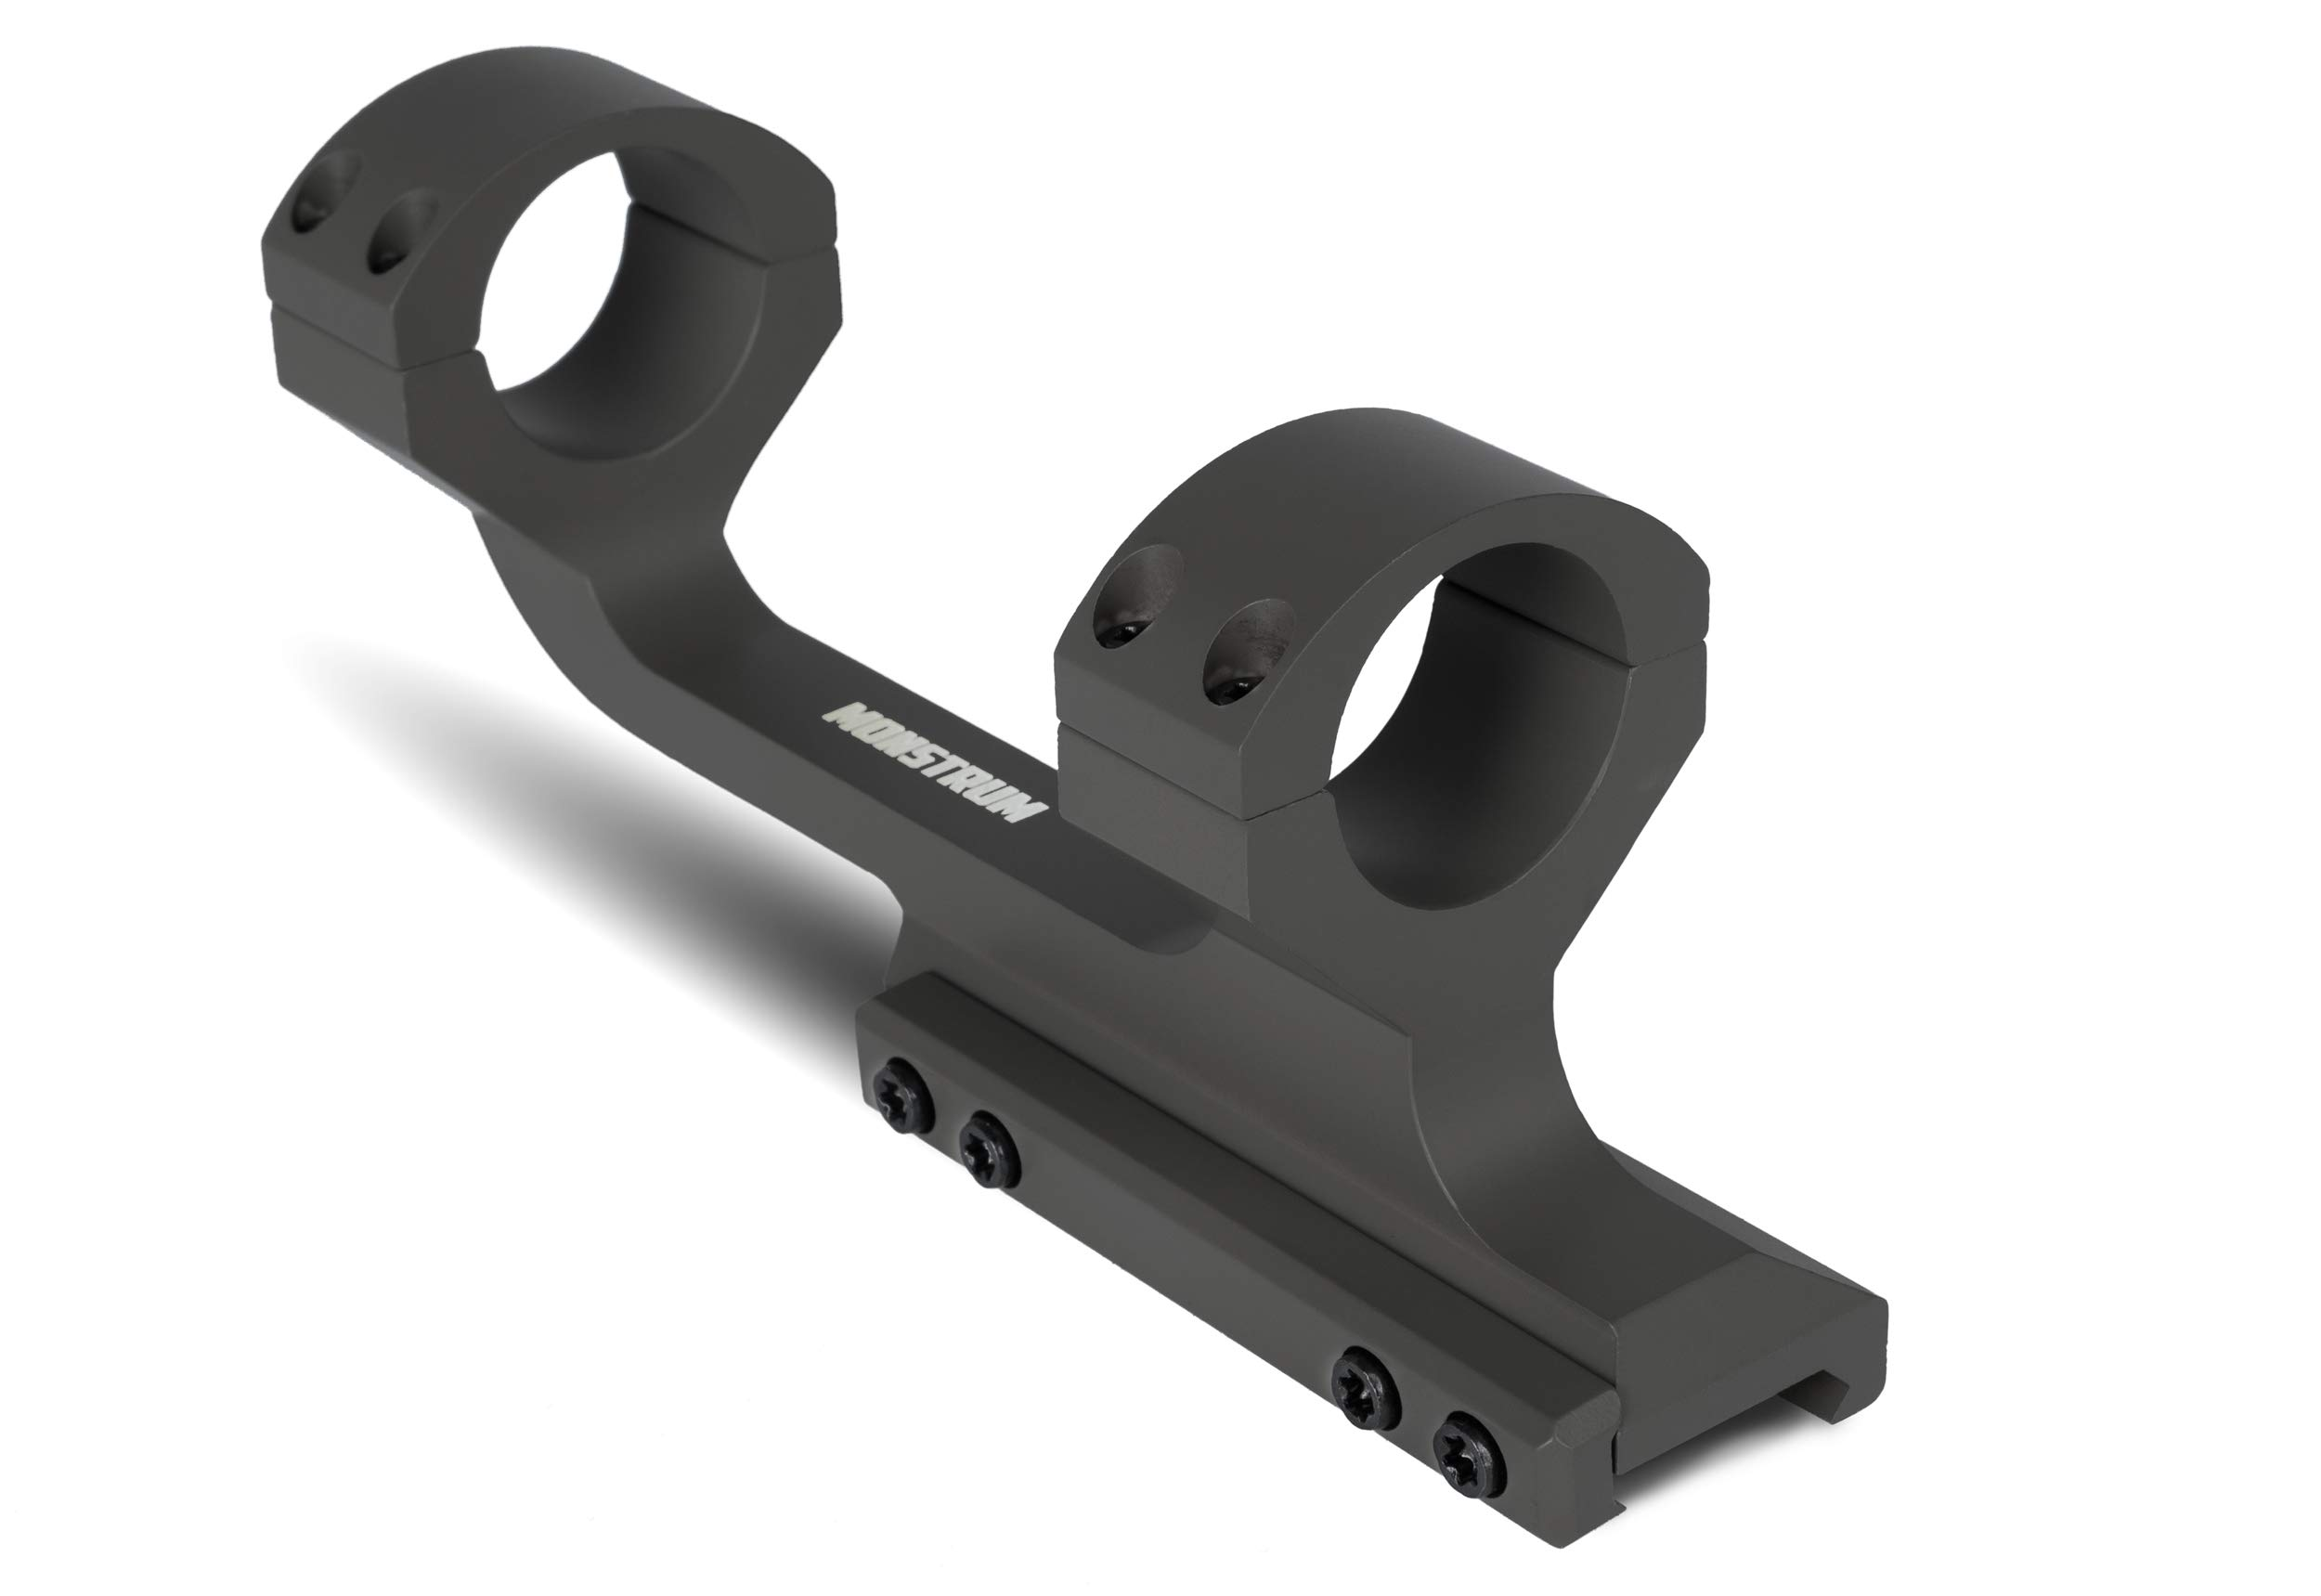 Monstrum Extended Series Offset Picatinny Scope Mount for Long Range Scopes | 30 mm Diameter